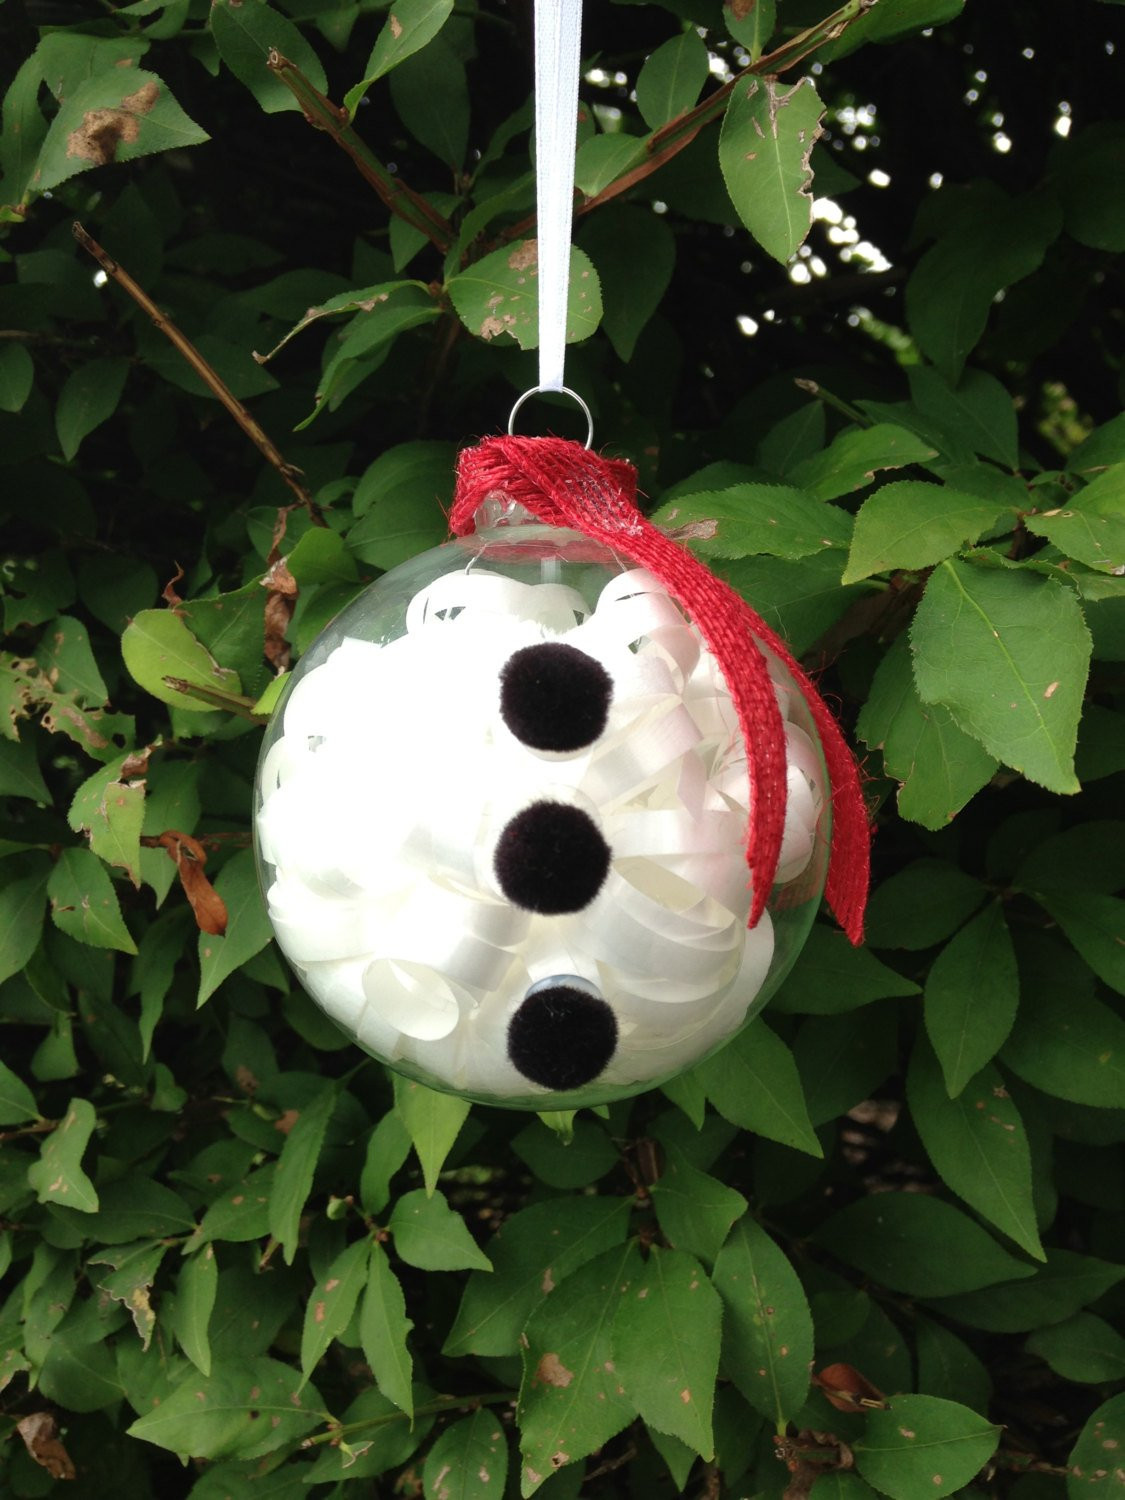 Best Of Handmade Snowman Christmas ornament Snowman Christmas ornaments Of Adorable 45 Models Snowman Christmas ornaments